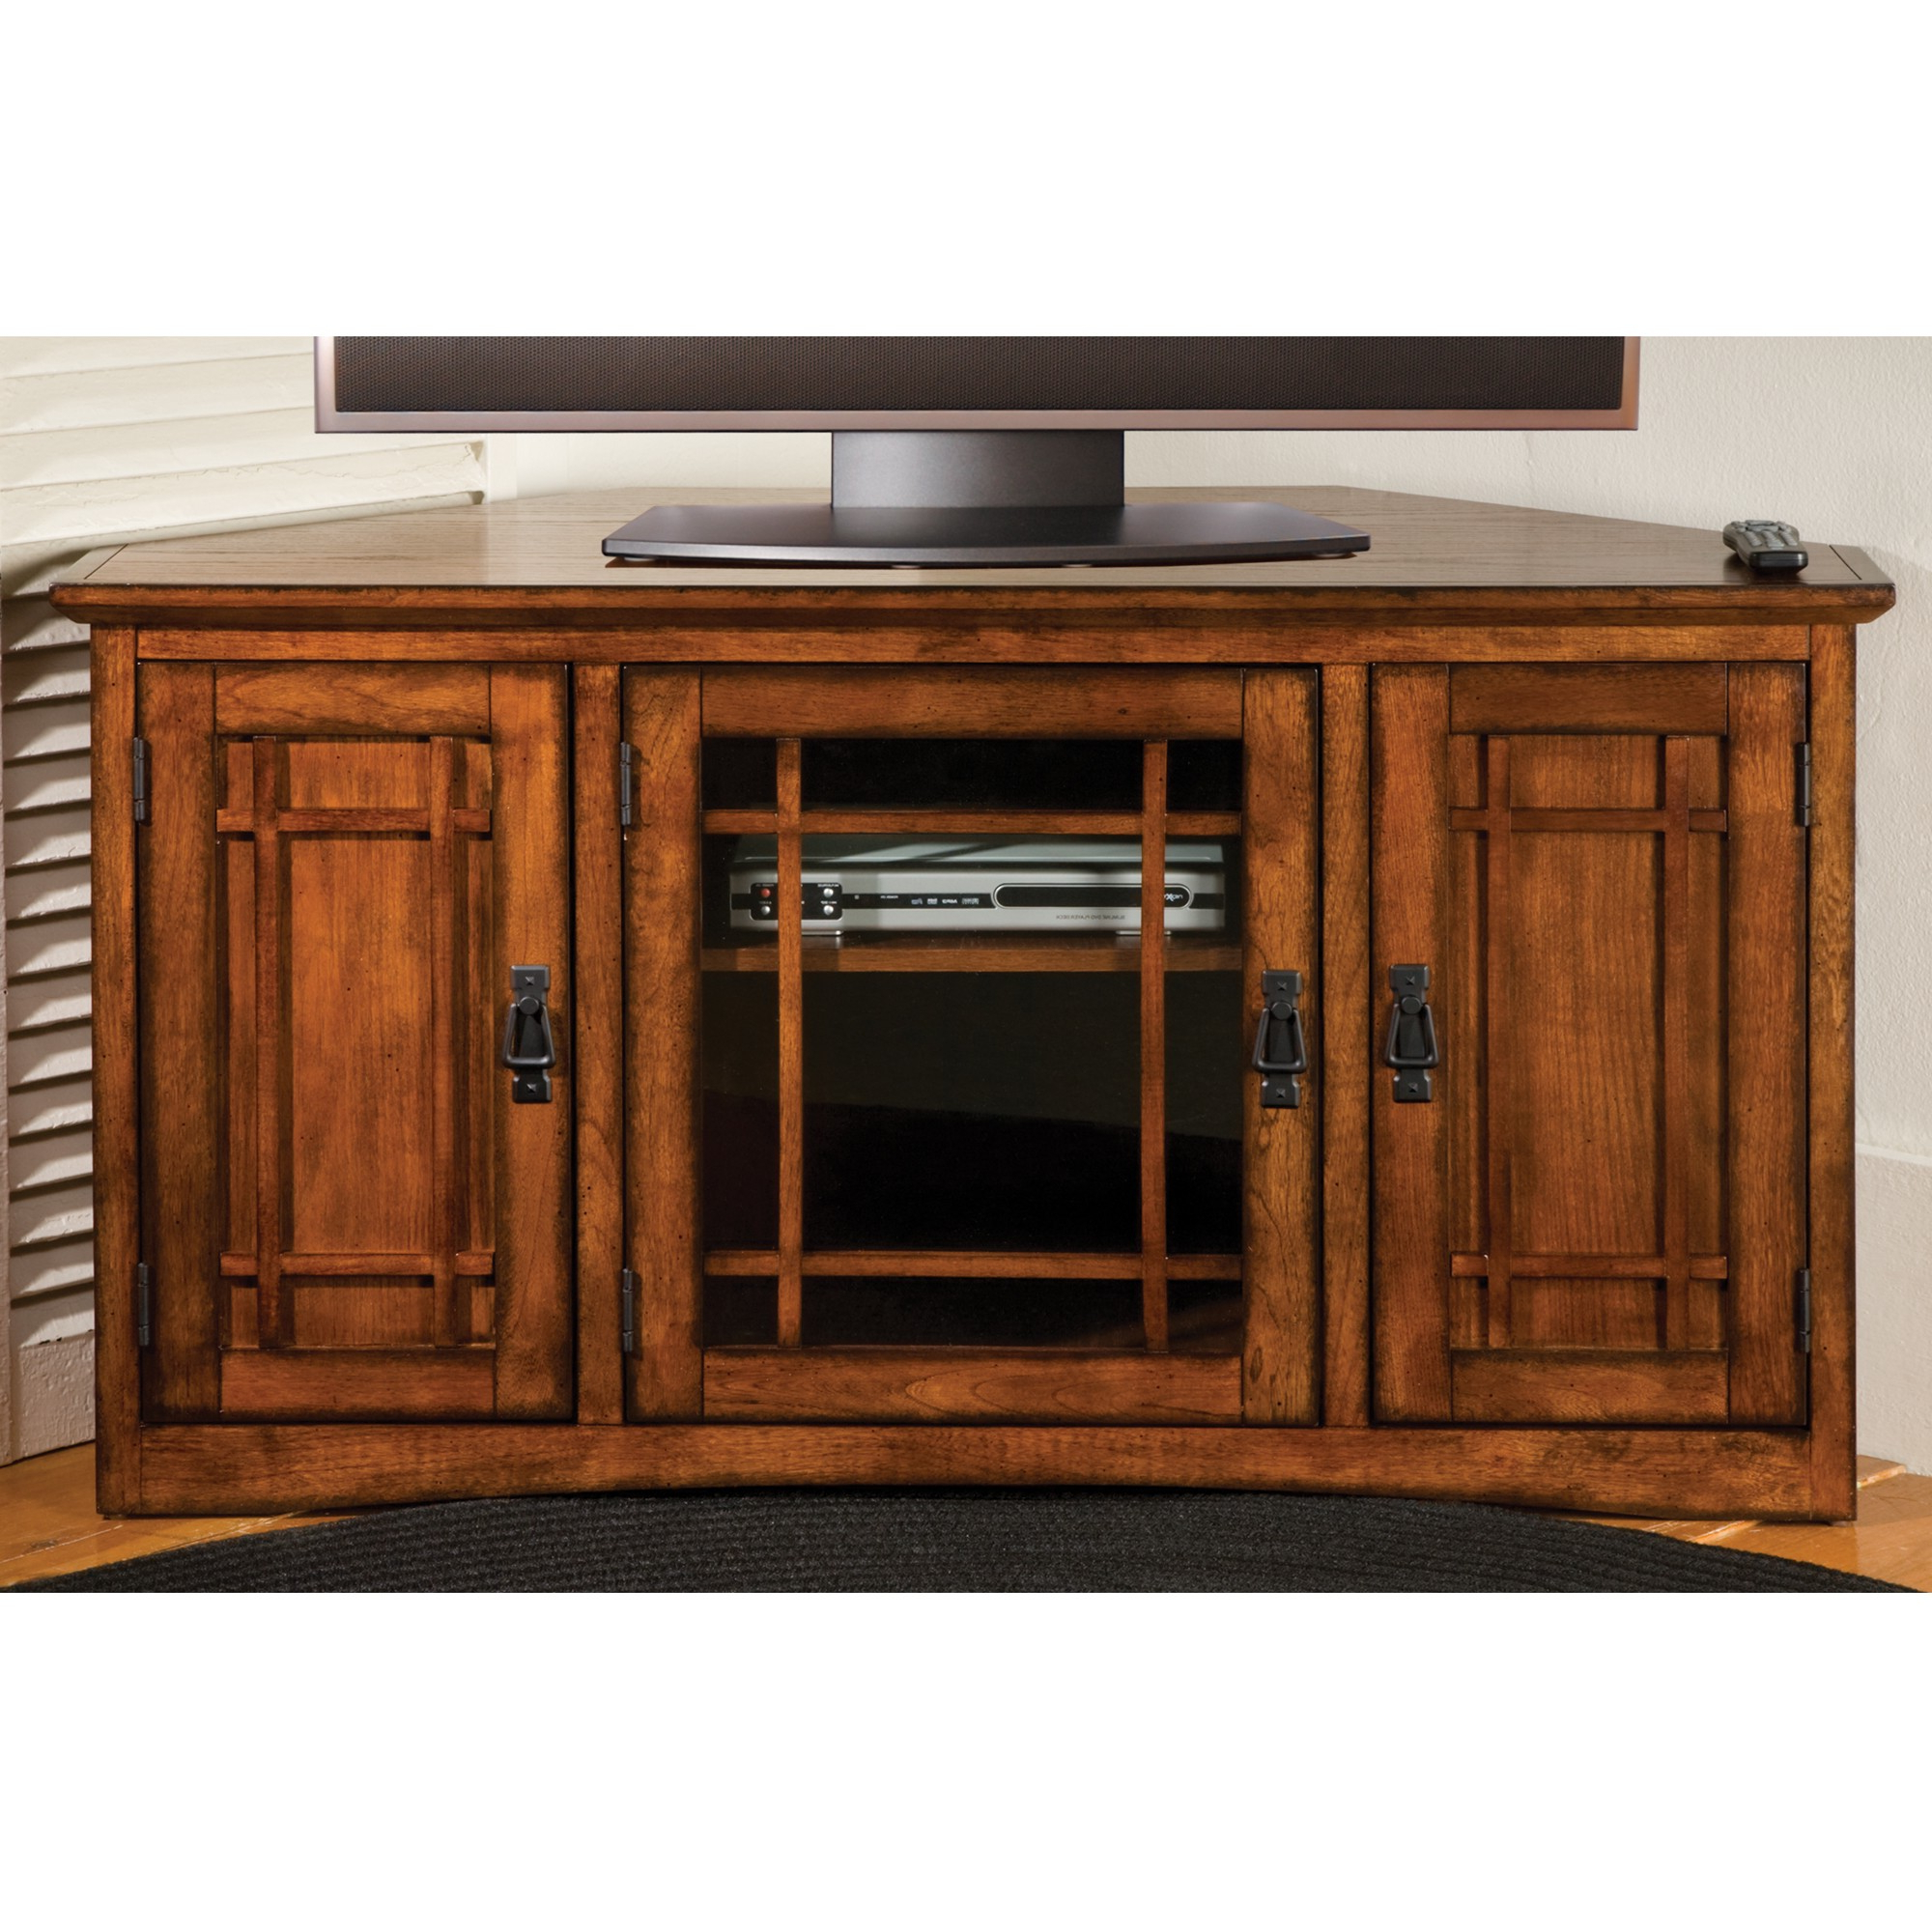 Tall Tv Stands For Flat Screens Small Stand Dorm Room Bedroom With For 2017 Tall Tv Cabinets Corner Unit (View 17 of 20)